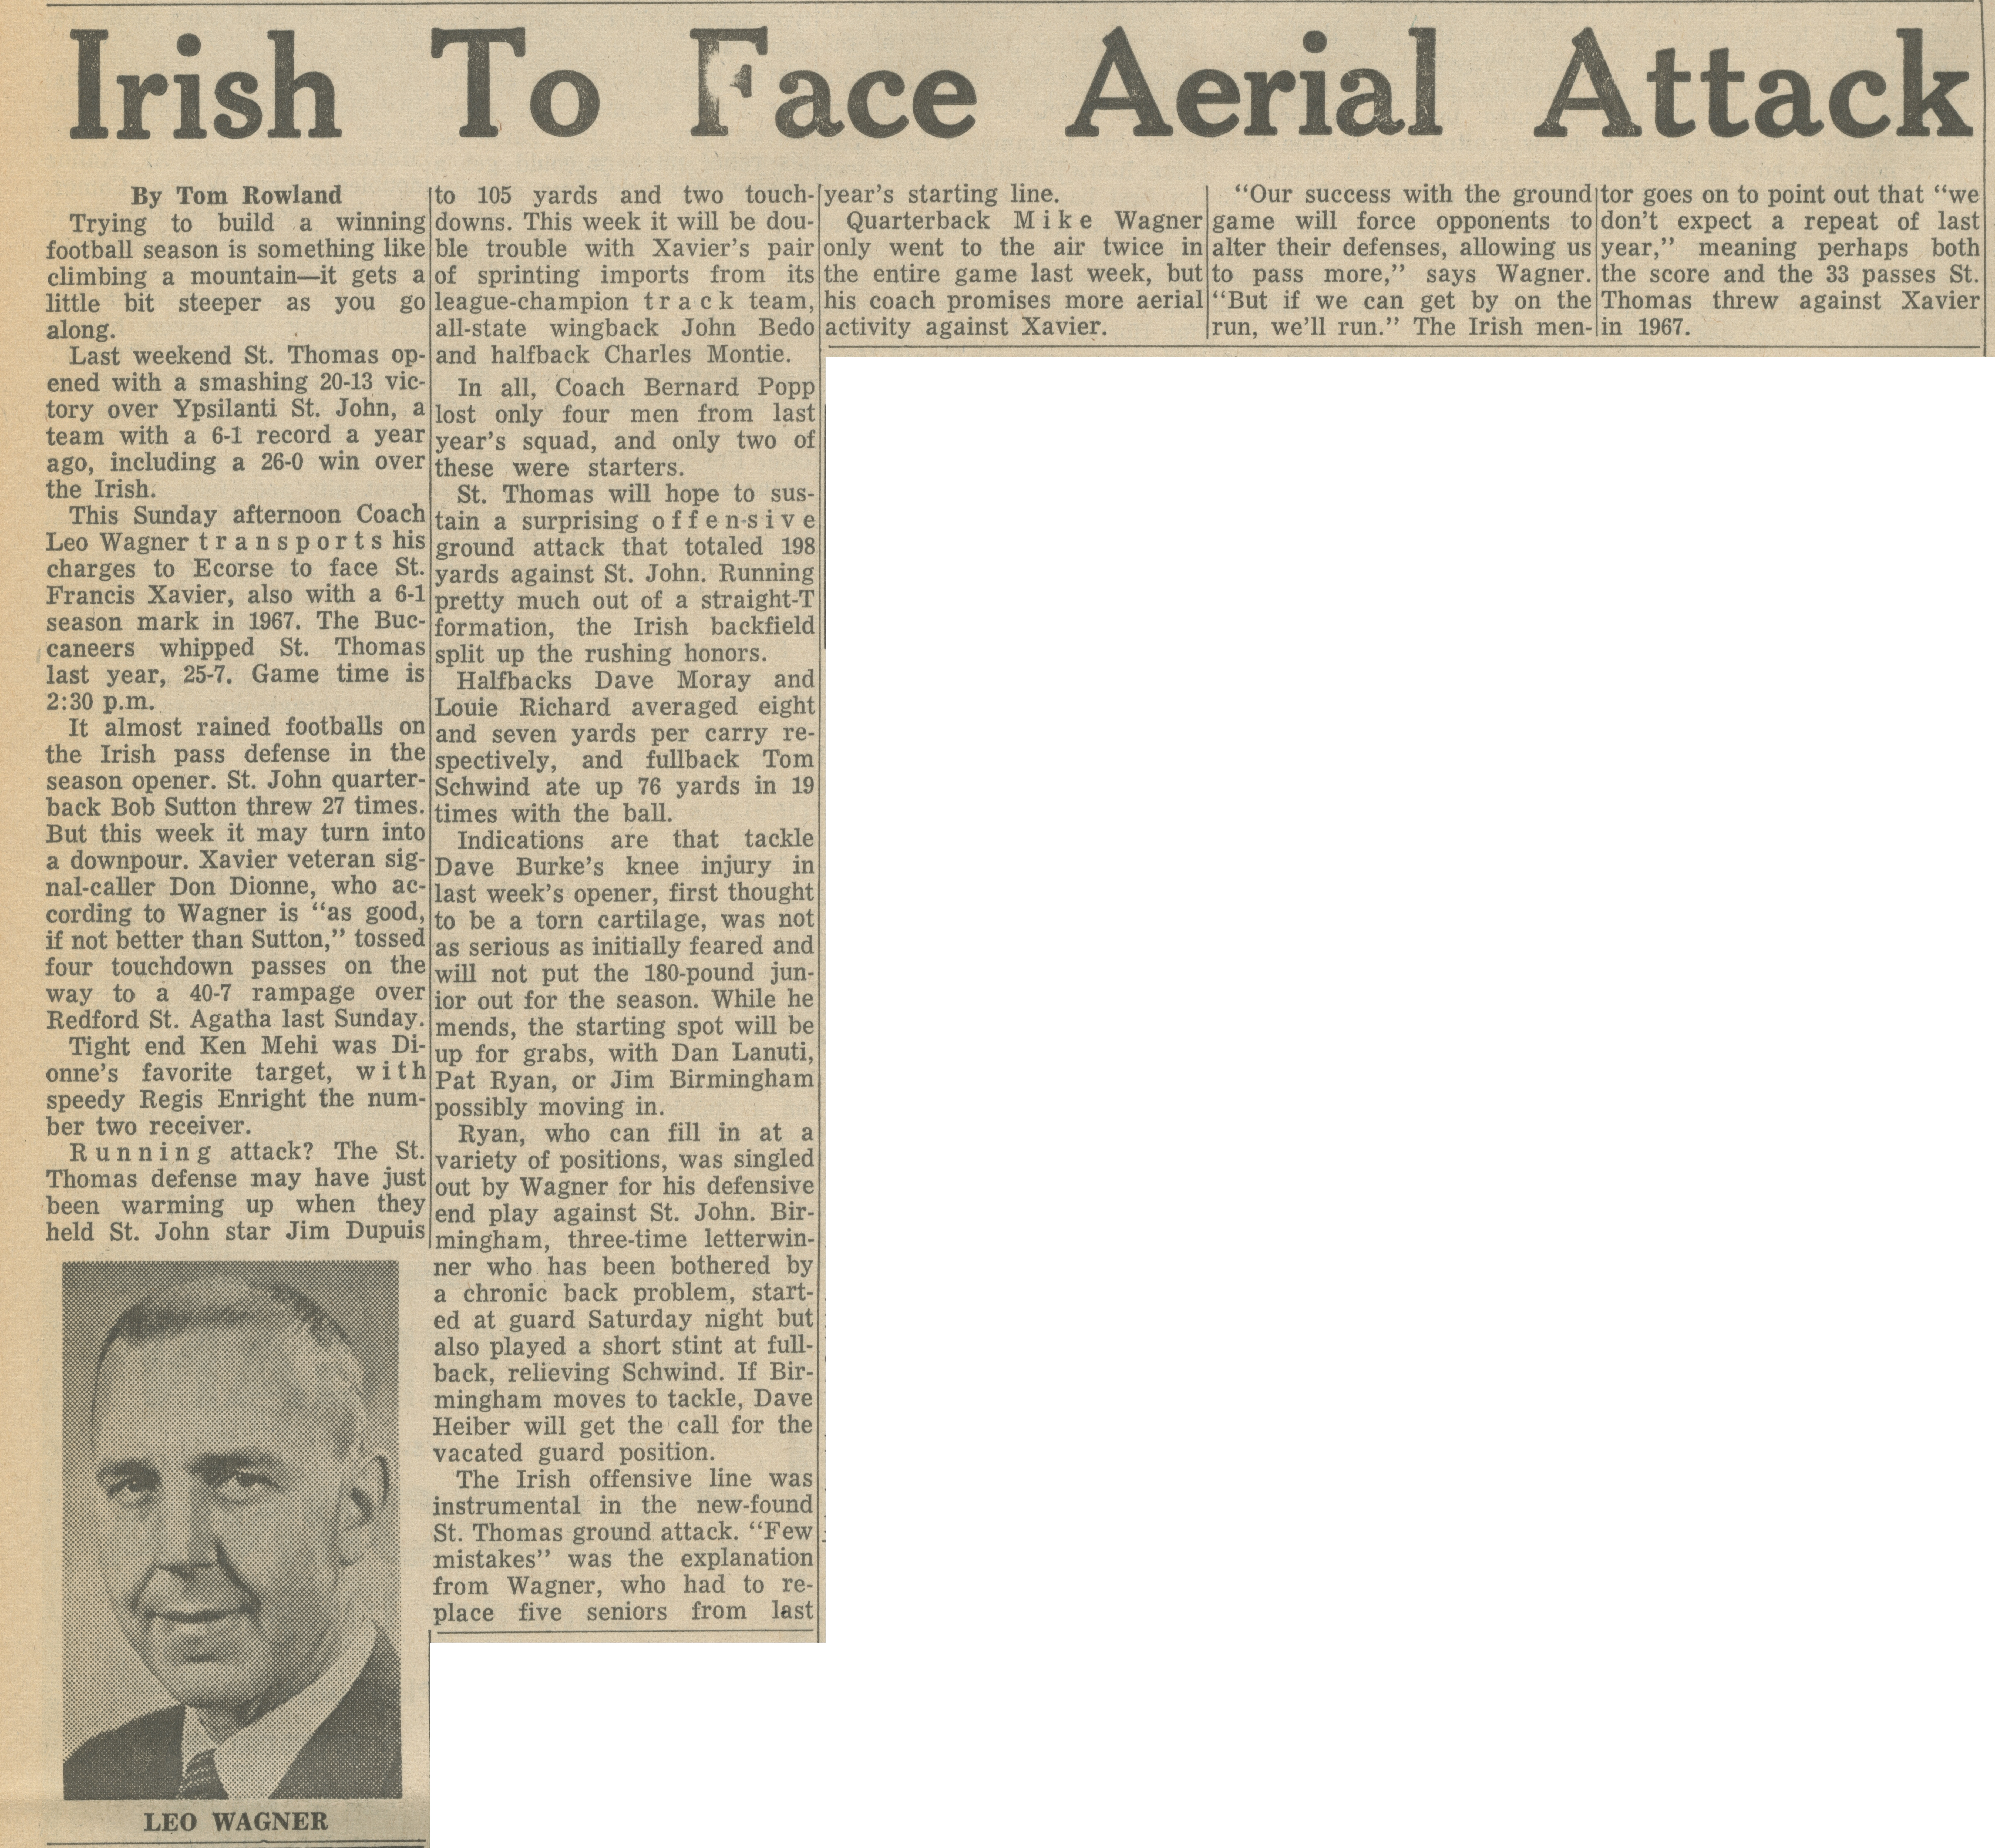 Irish To Face Aerial Attack image